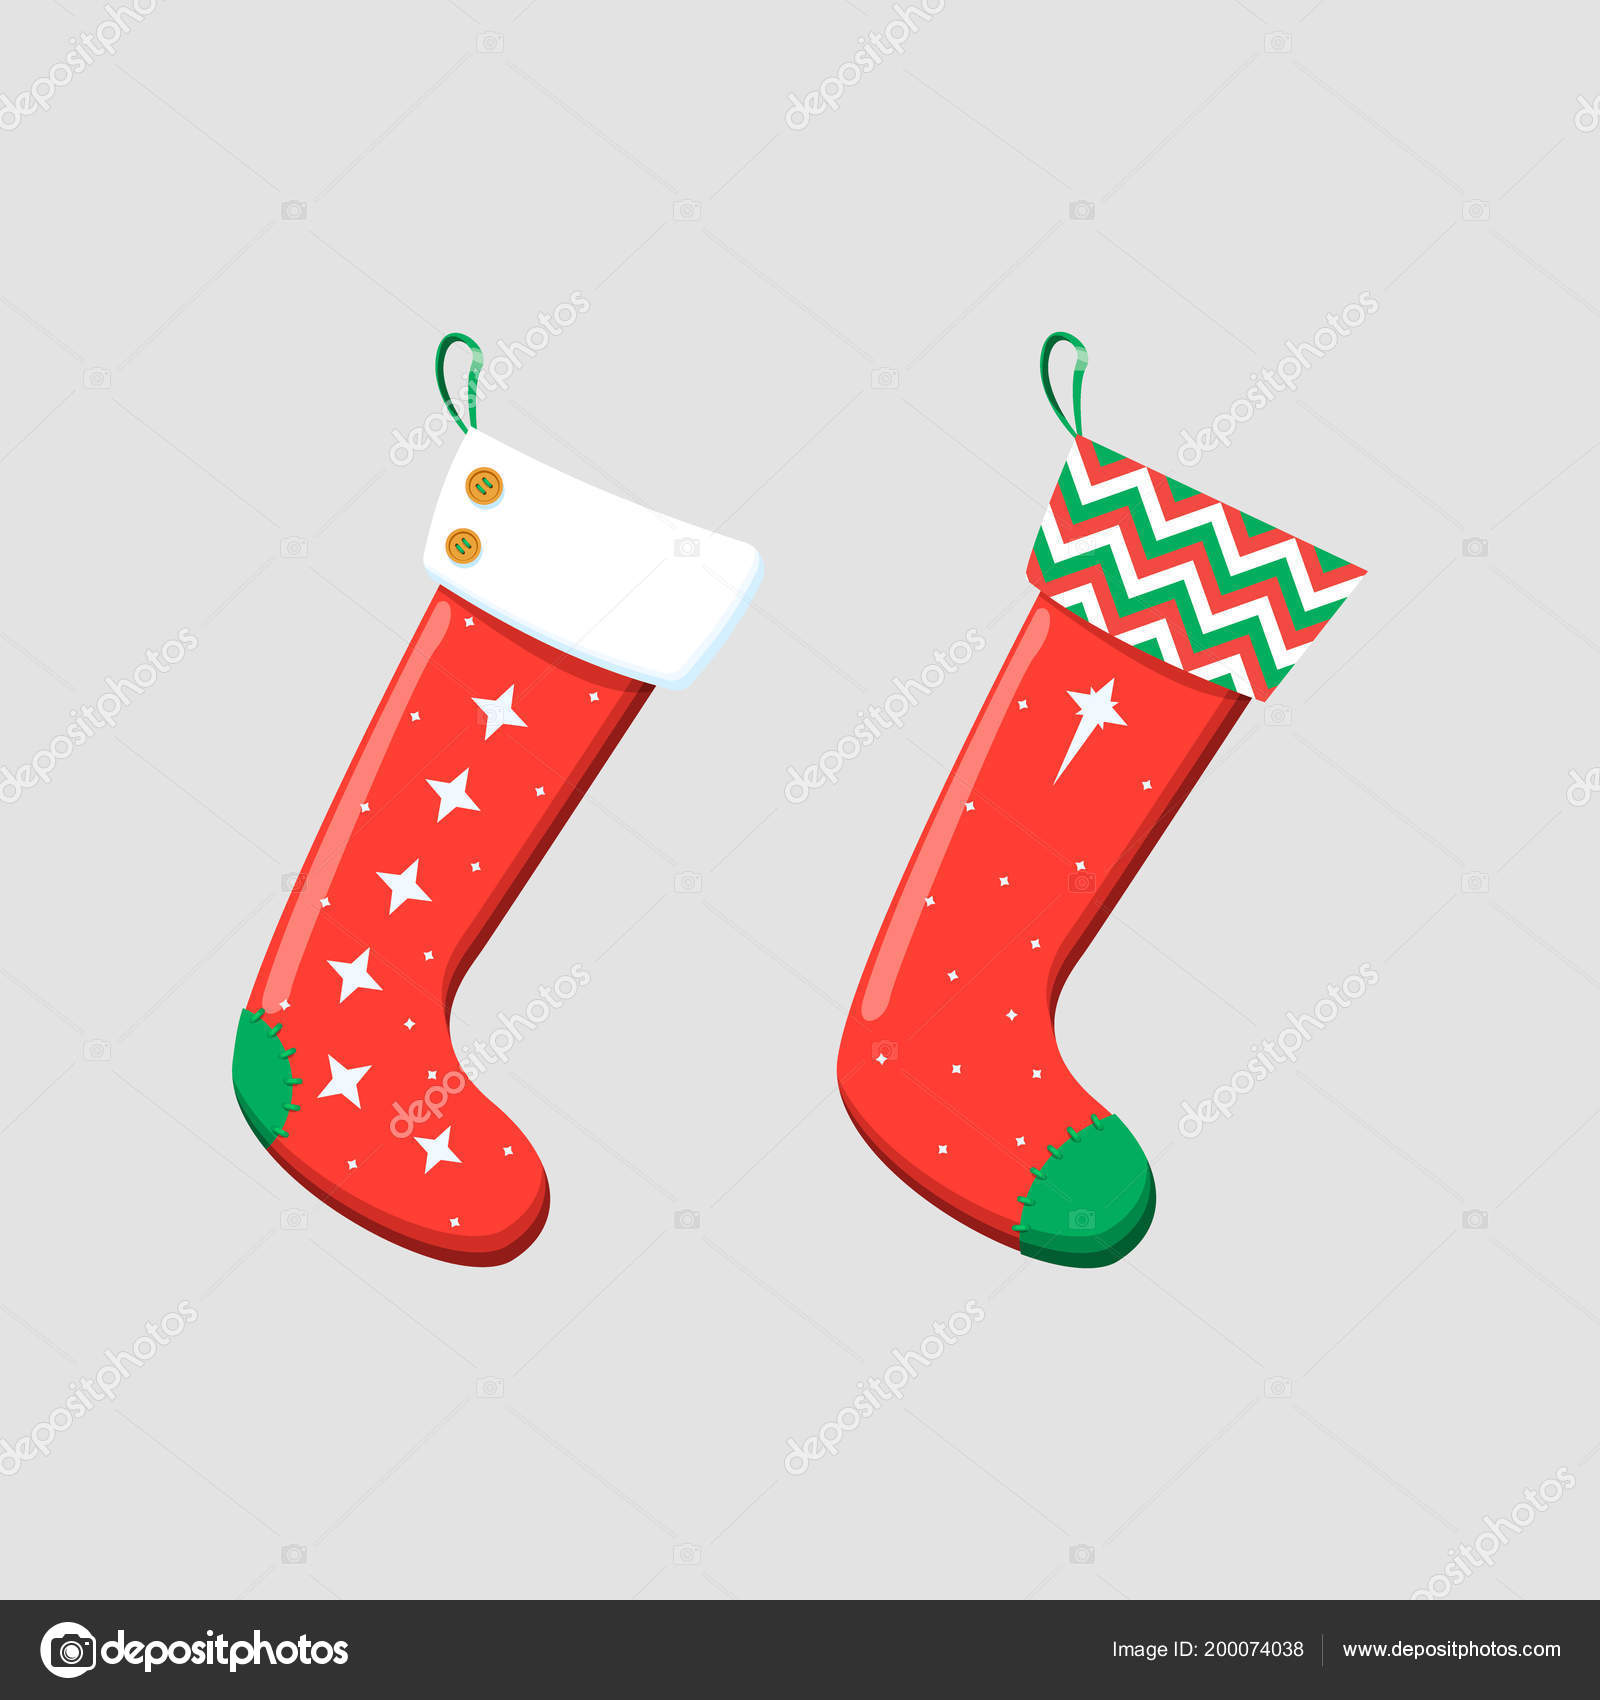 christmas stockings red green colors hanging holiday decorations for gifts stock vector - Why Are Christmas Colors Red And Green